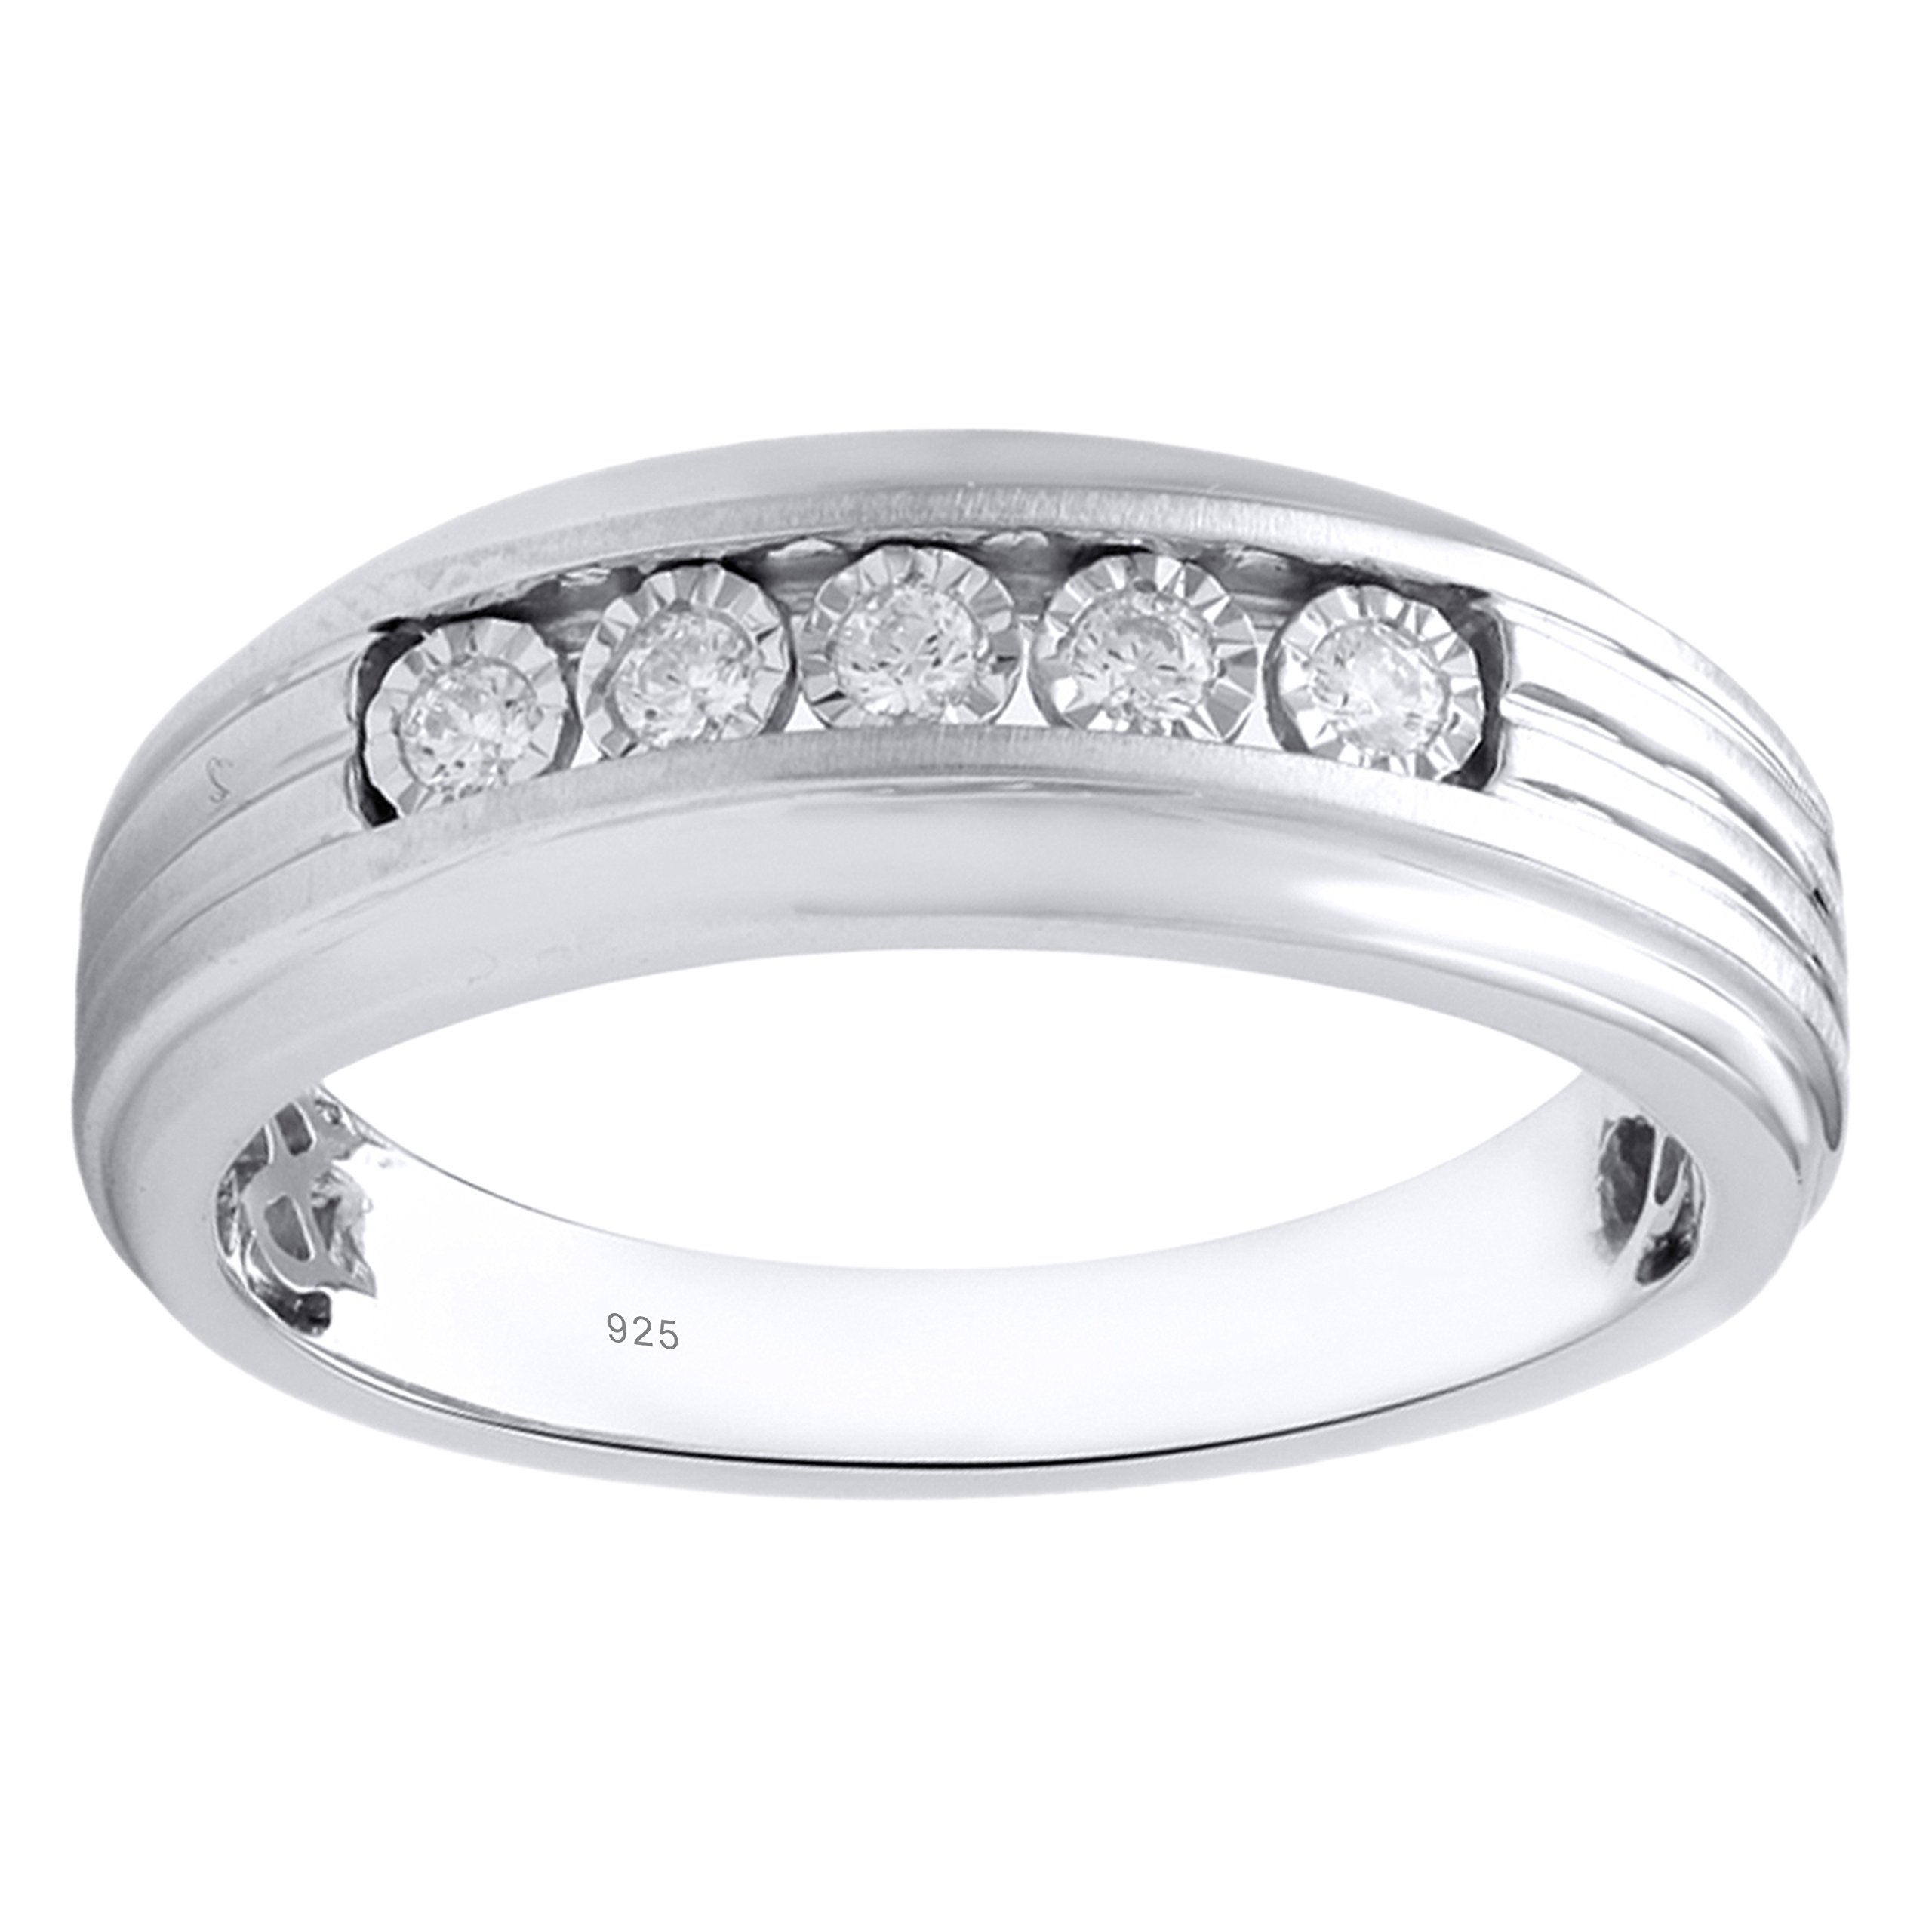 10K White Gold 1/6cttw Men's Diamond Wedding Ring by Diamante